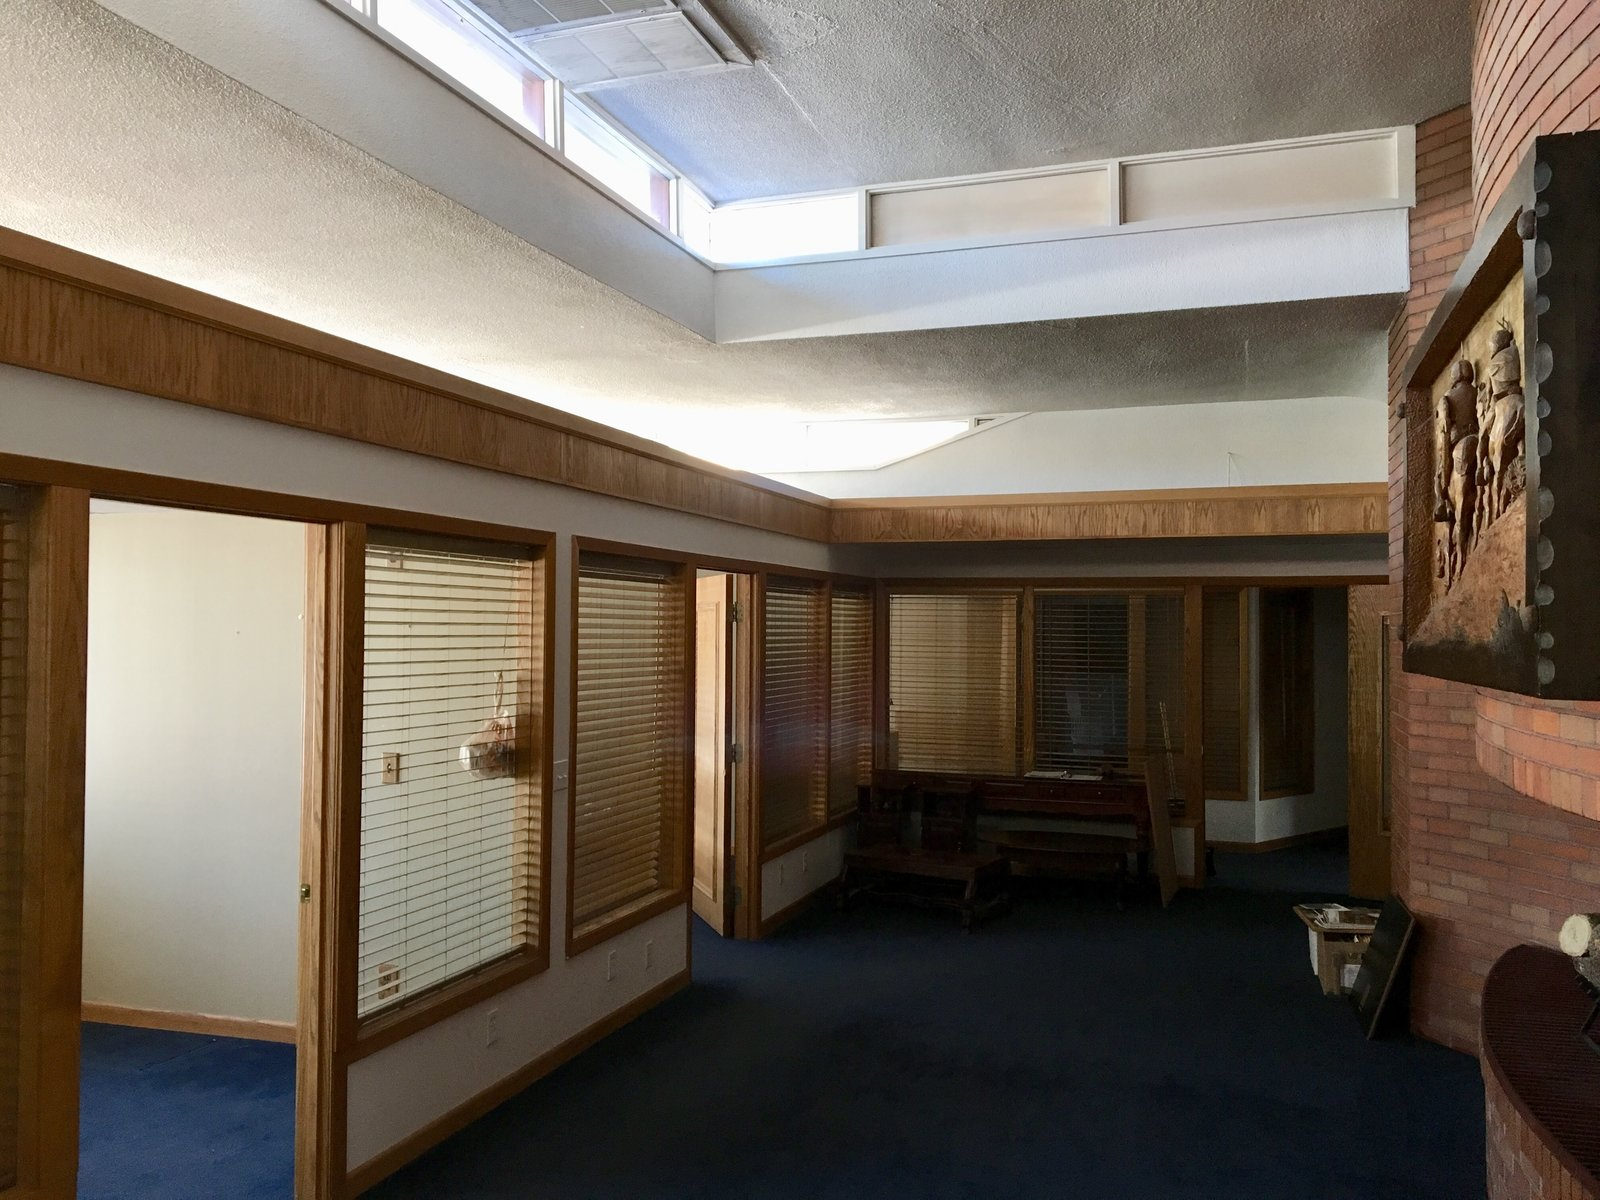 Hallway and Carpet Floor  Photo 3 of 7 in Without a Buyer, This Frank Lloyd Wright Building Will Be Destroyed in 3 Days